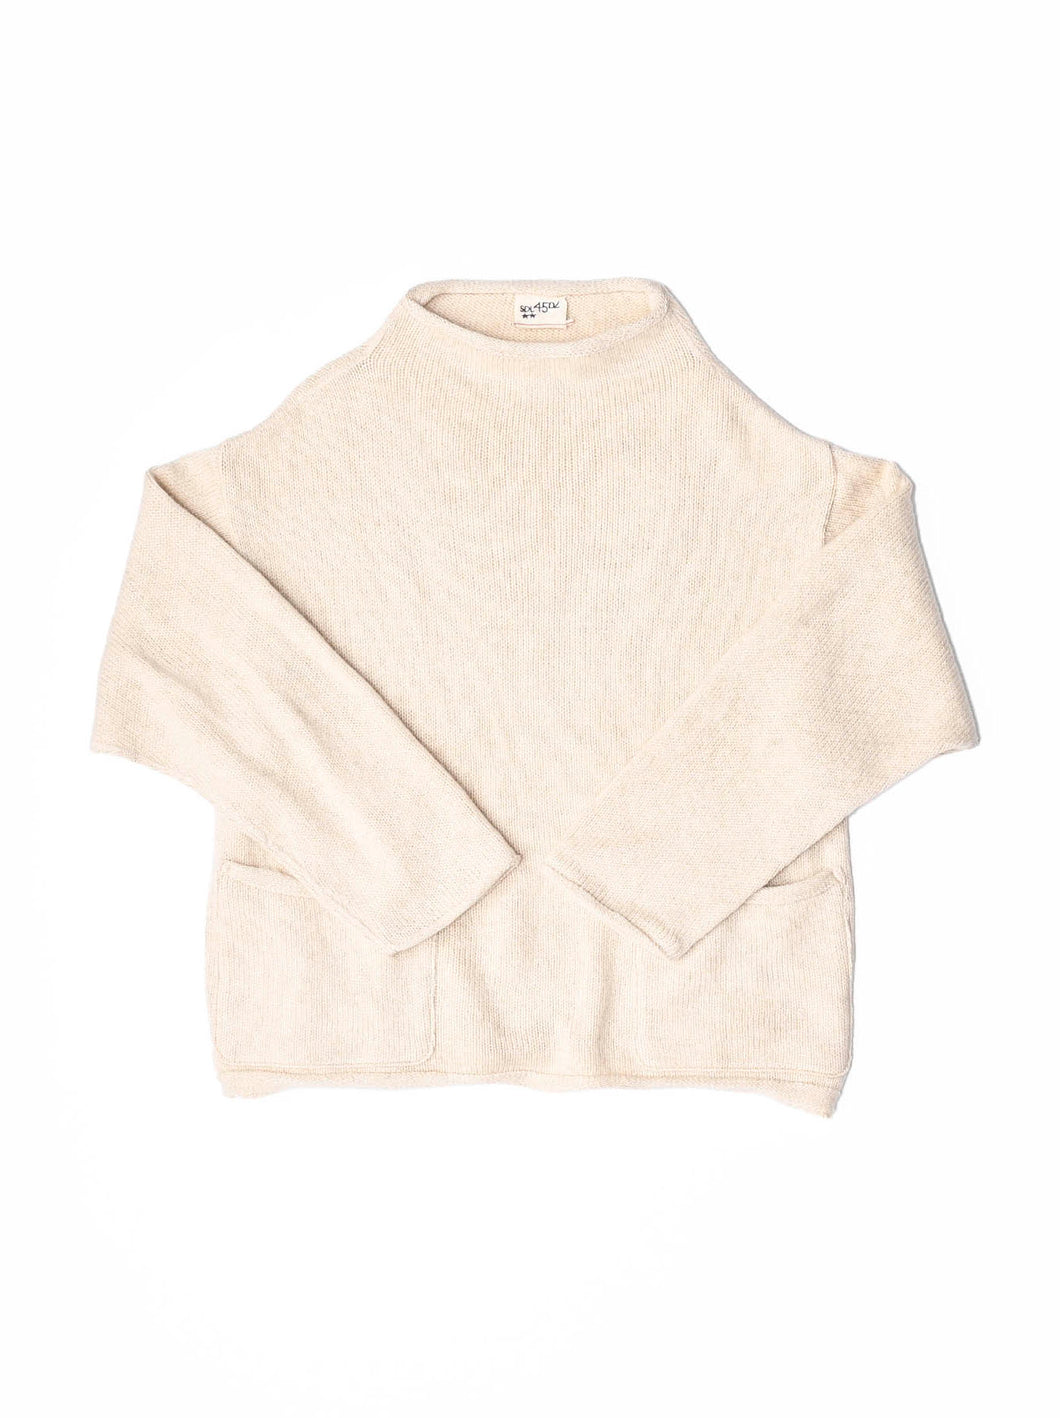 45 Star Cashmere Umahiko Sweater in white